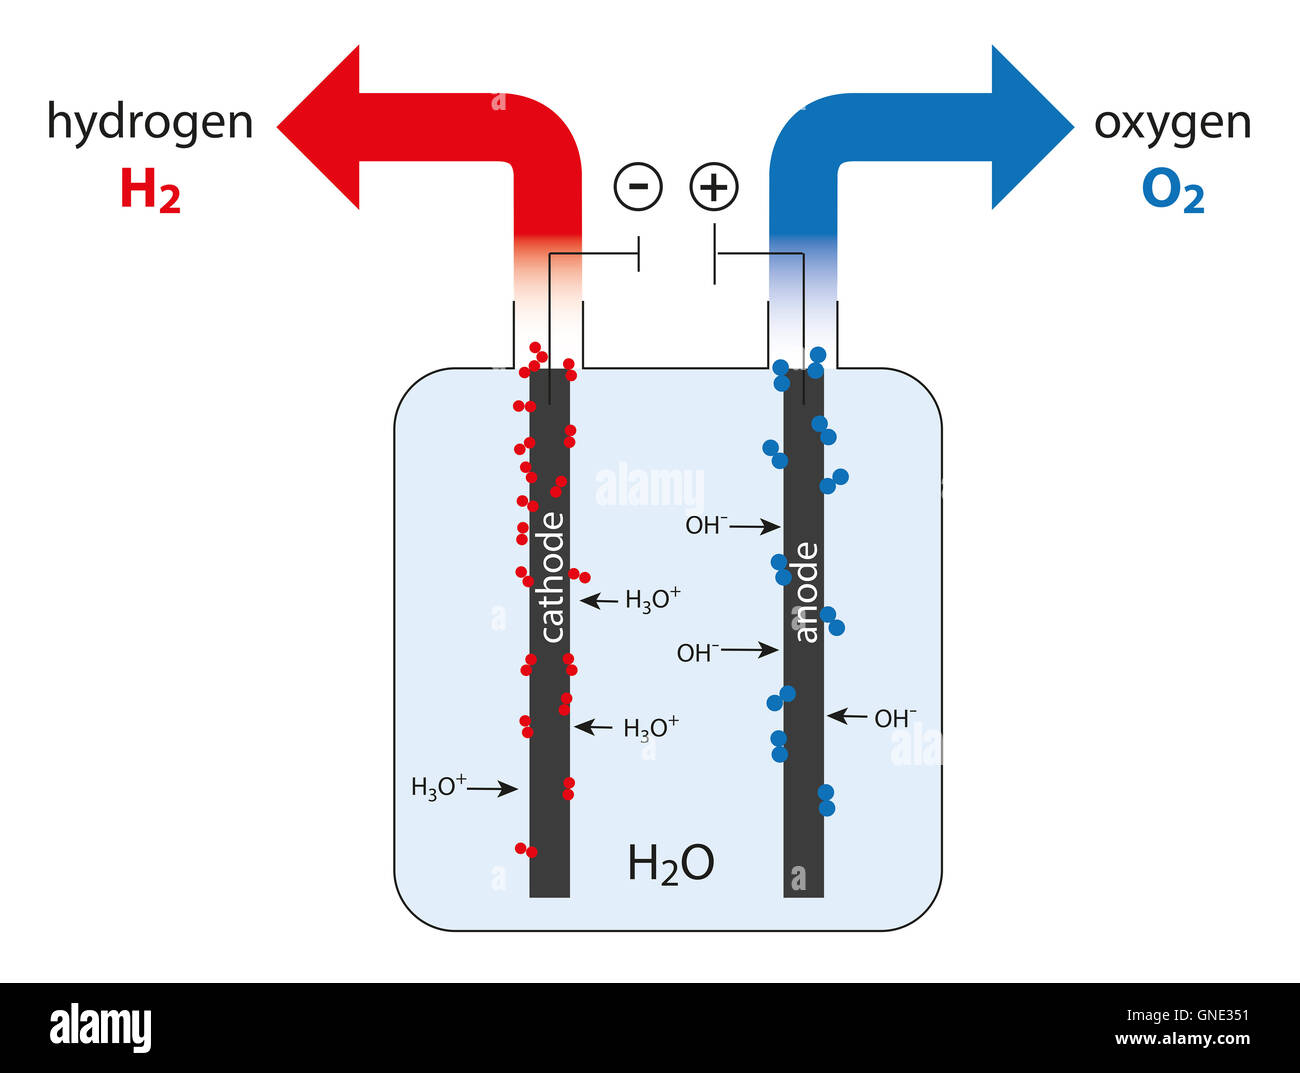 Electrolysis Cell Of Water To Produce Hydrogen And Oxygen